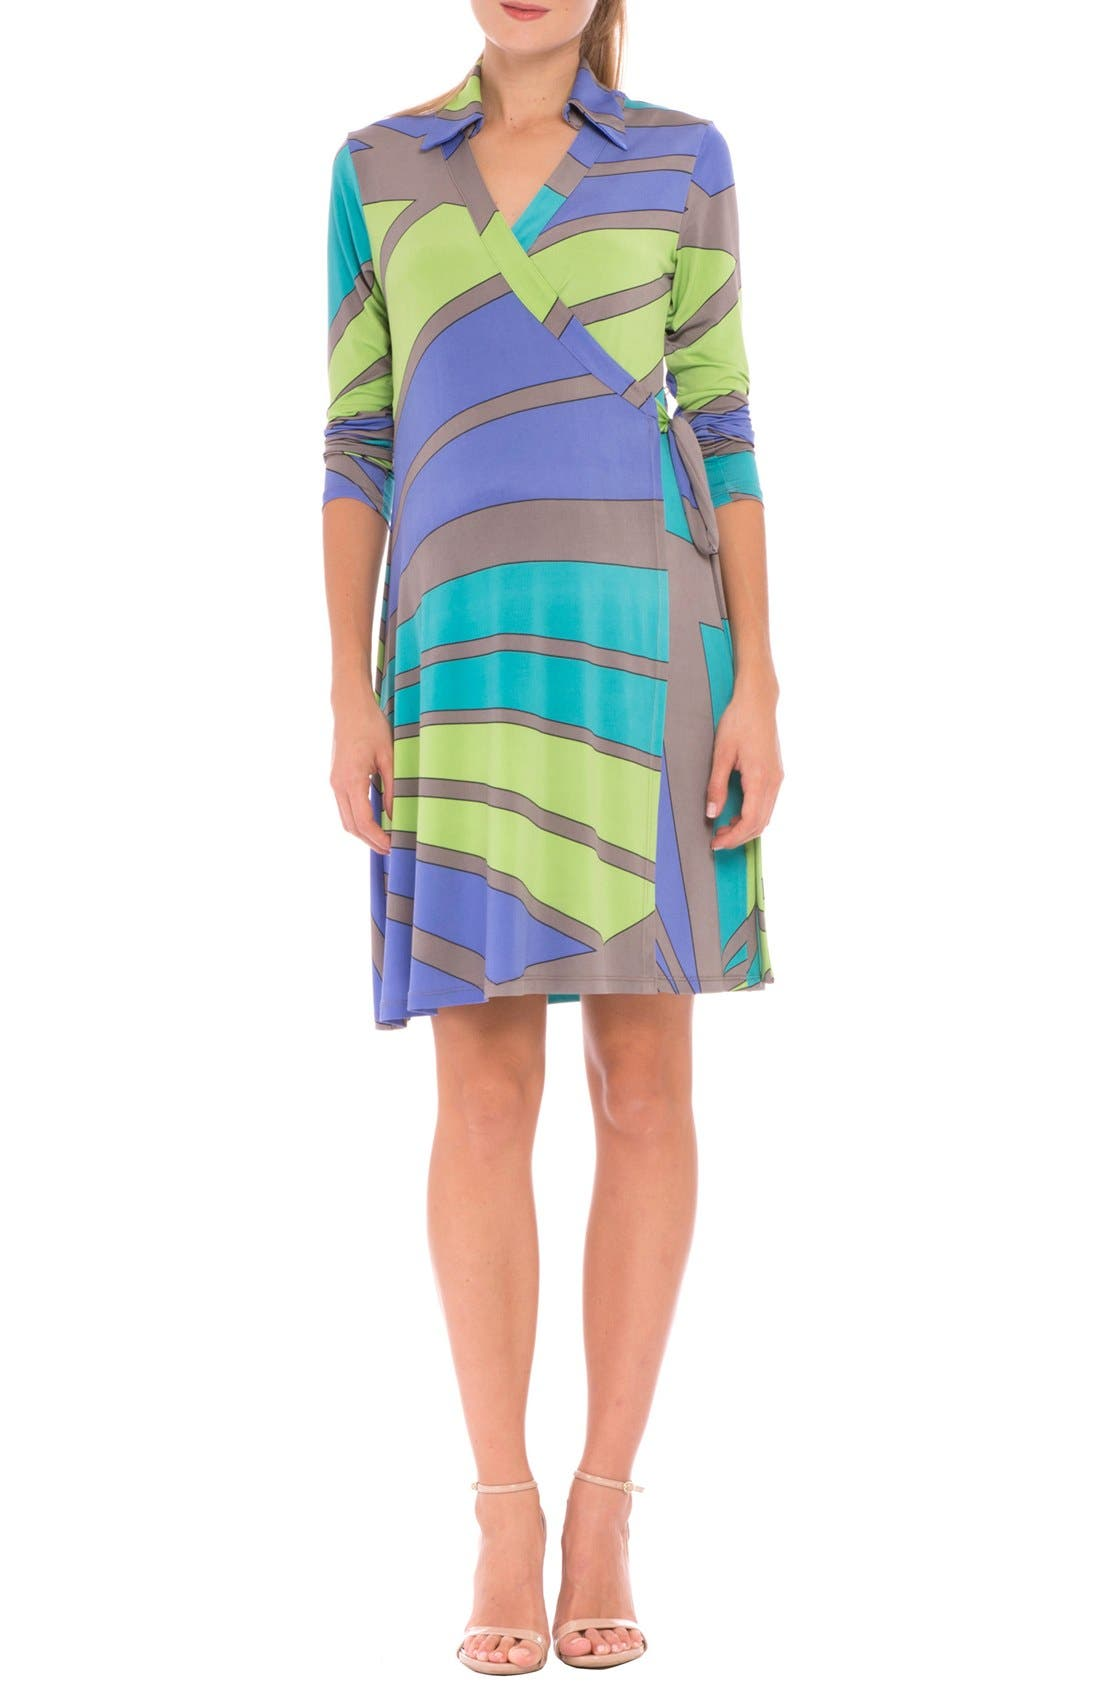 OLIAN 'Trisha' Matnernity Wrap Dress